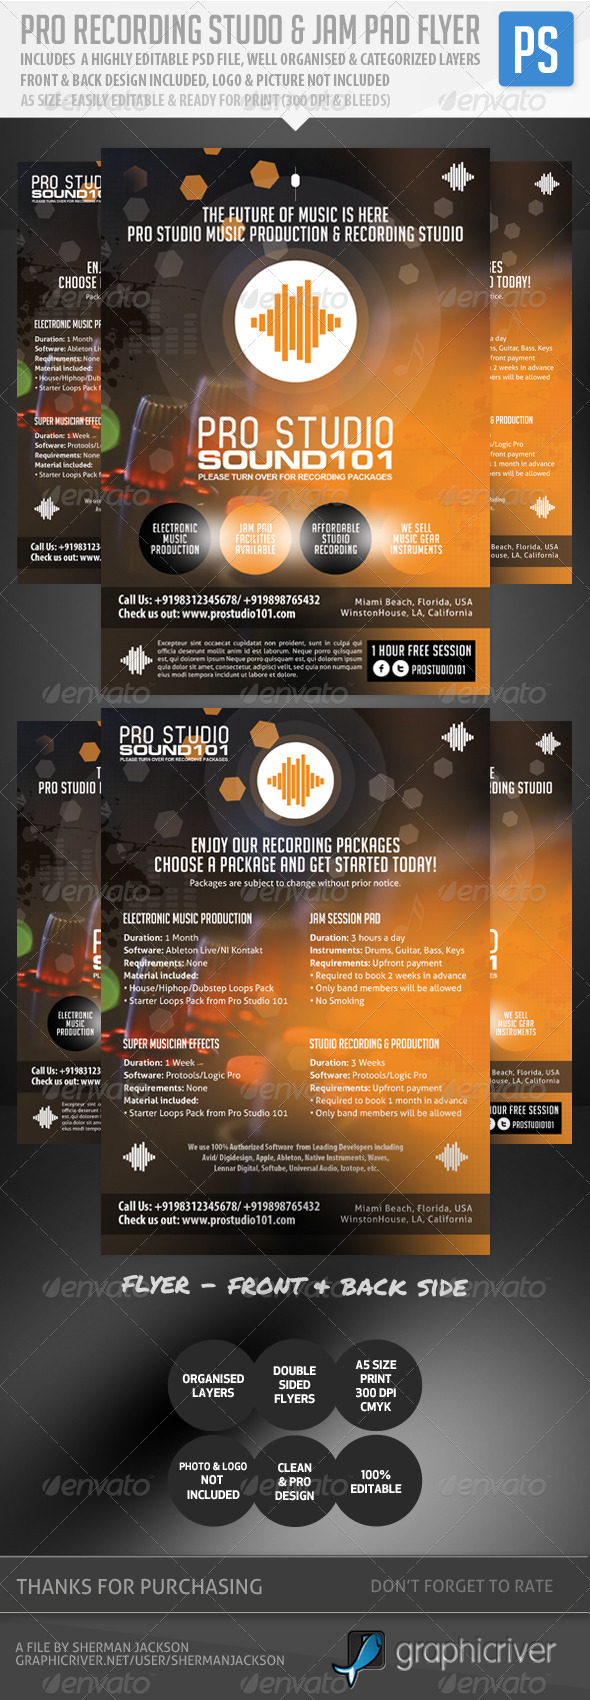 Pro Recording Studio & Jam Pad Flyer - Corporate Flyers